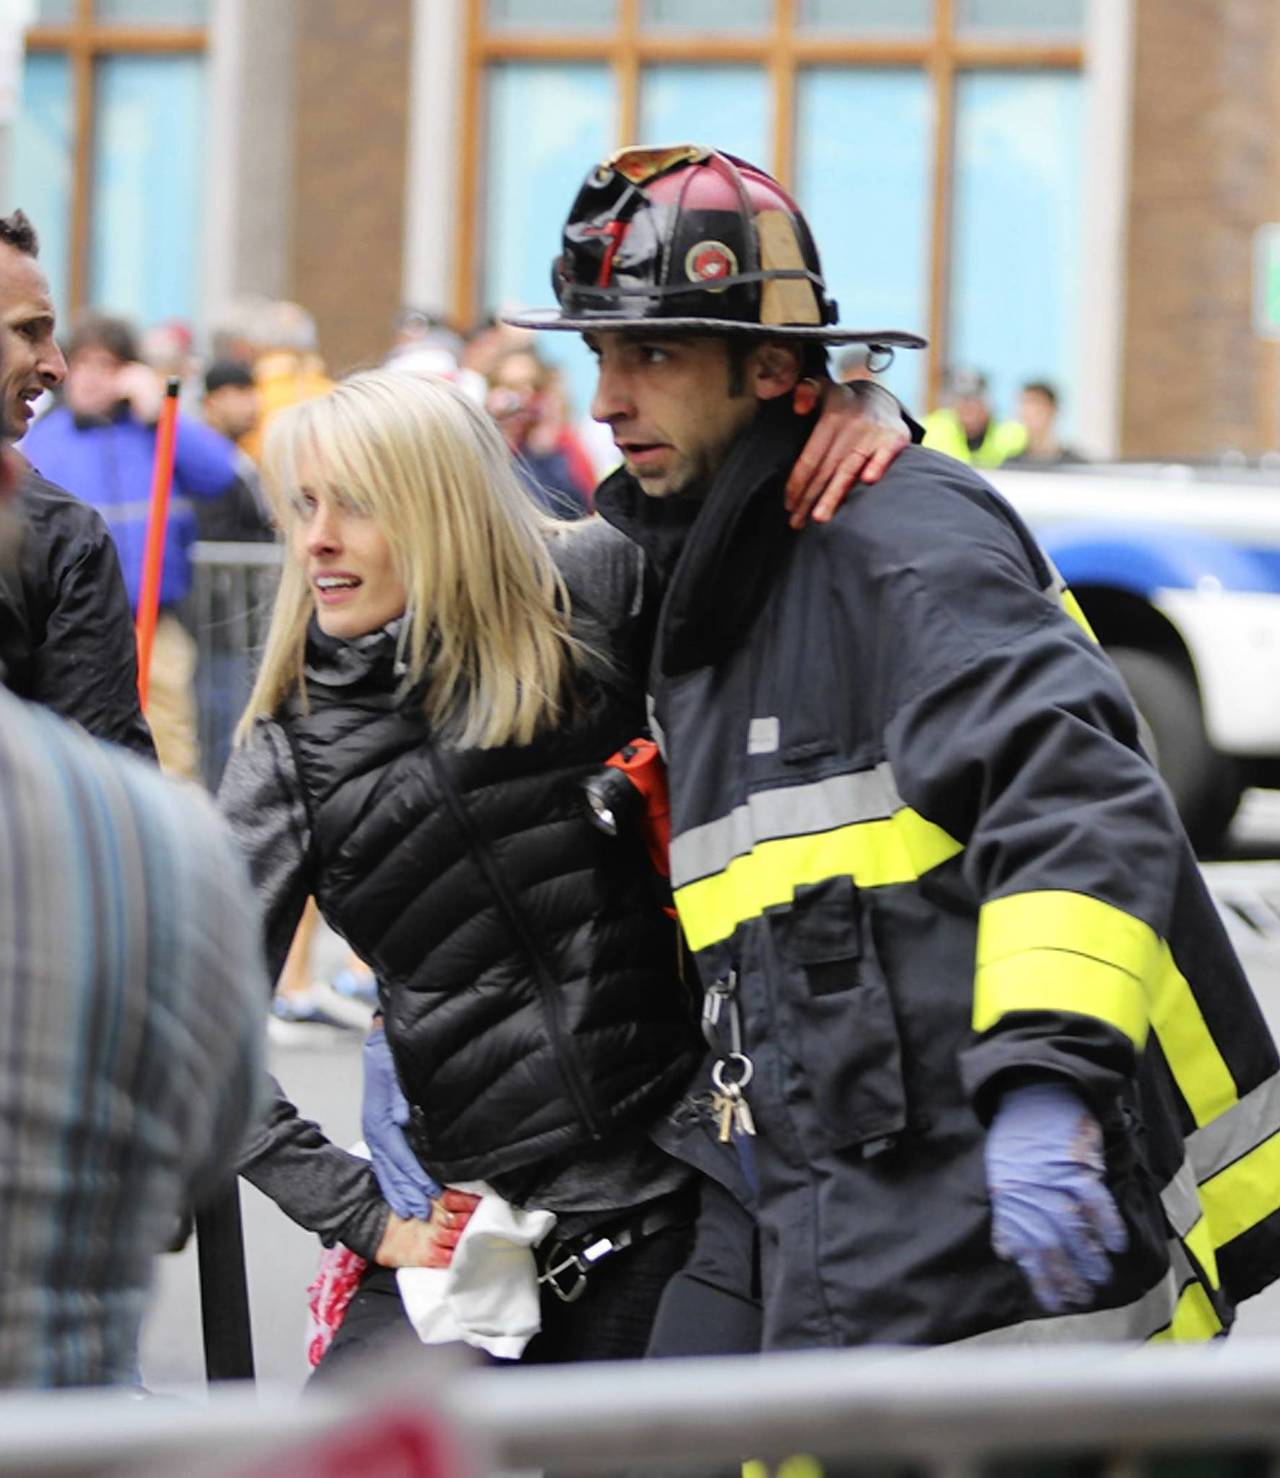 An injured woman is attended to at the scene of an explosion at the Boston Marathon.